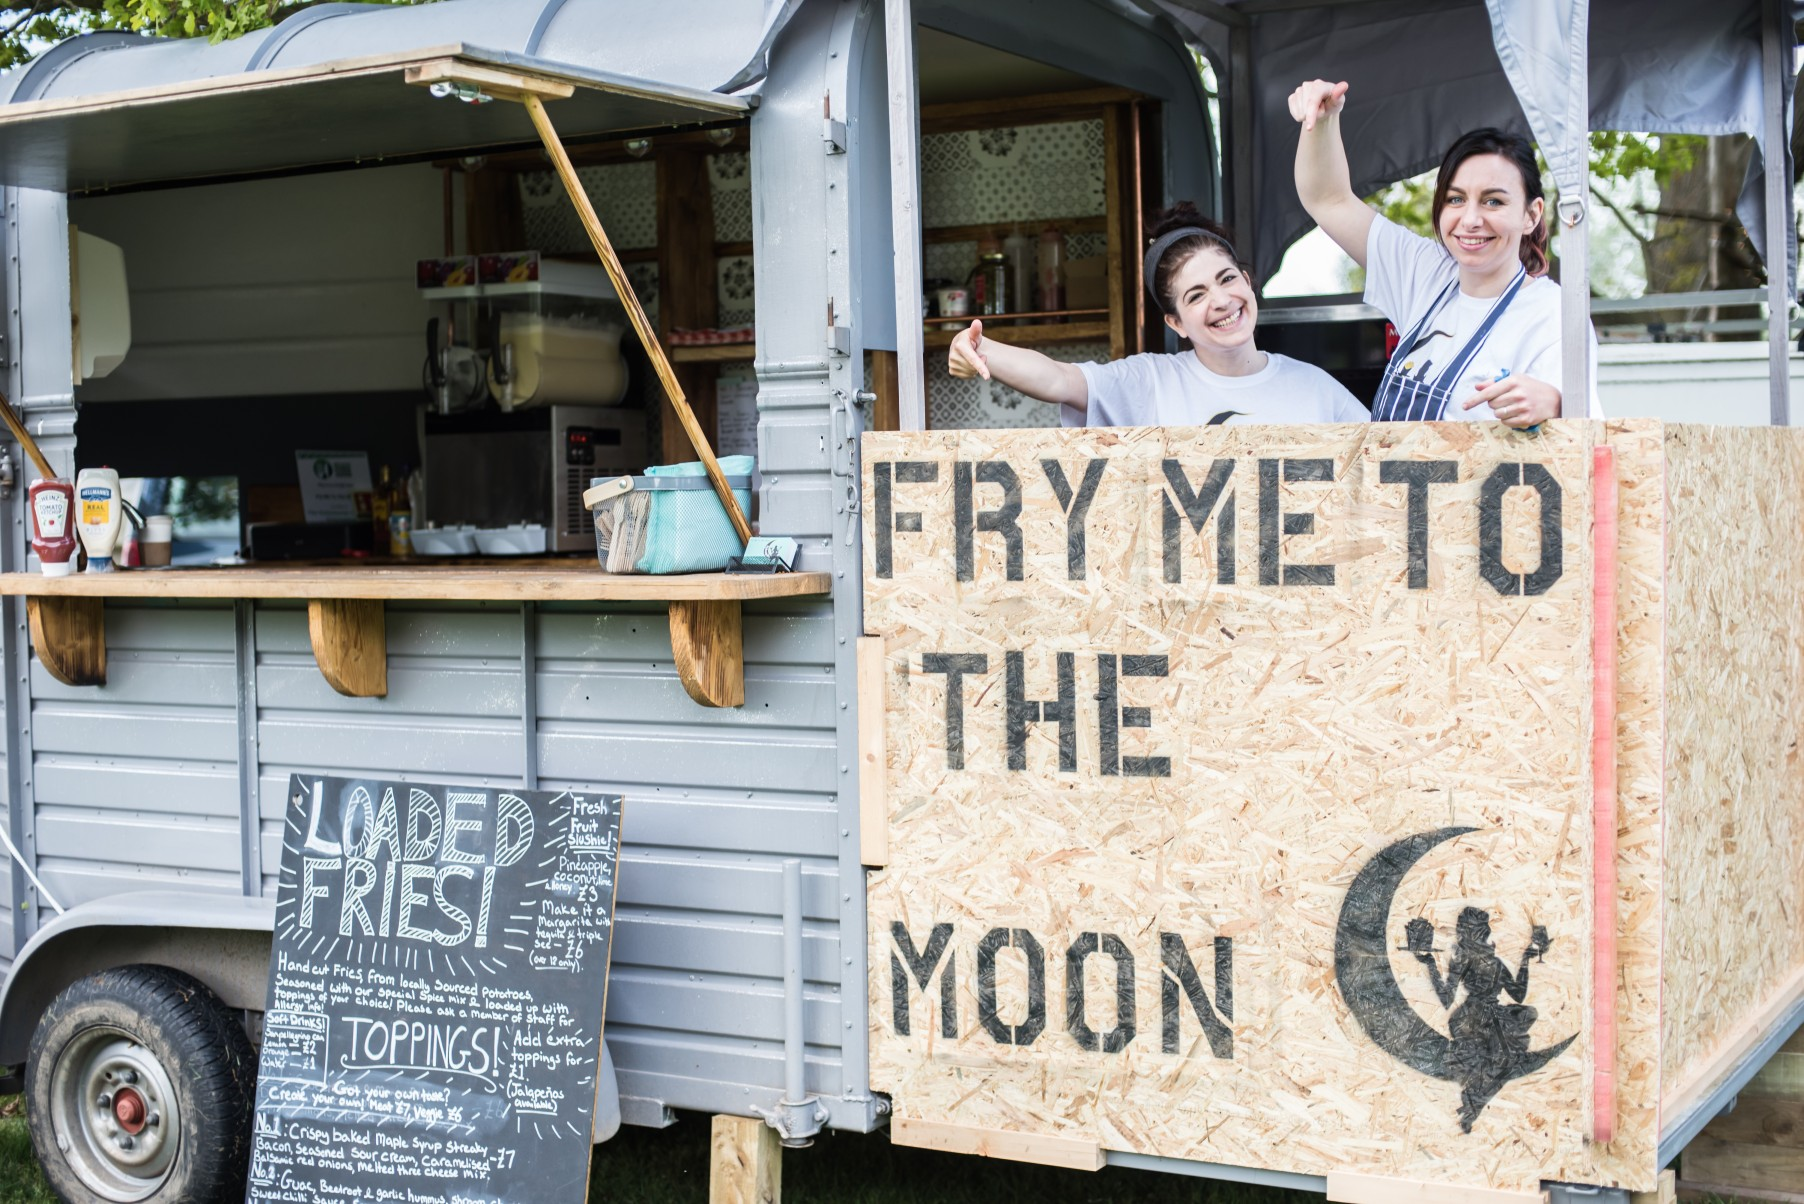 Festival wedding - Unconventional Wedding Festival - Fry me to the moon - wedding food van (2)